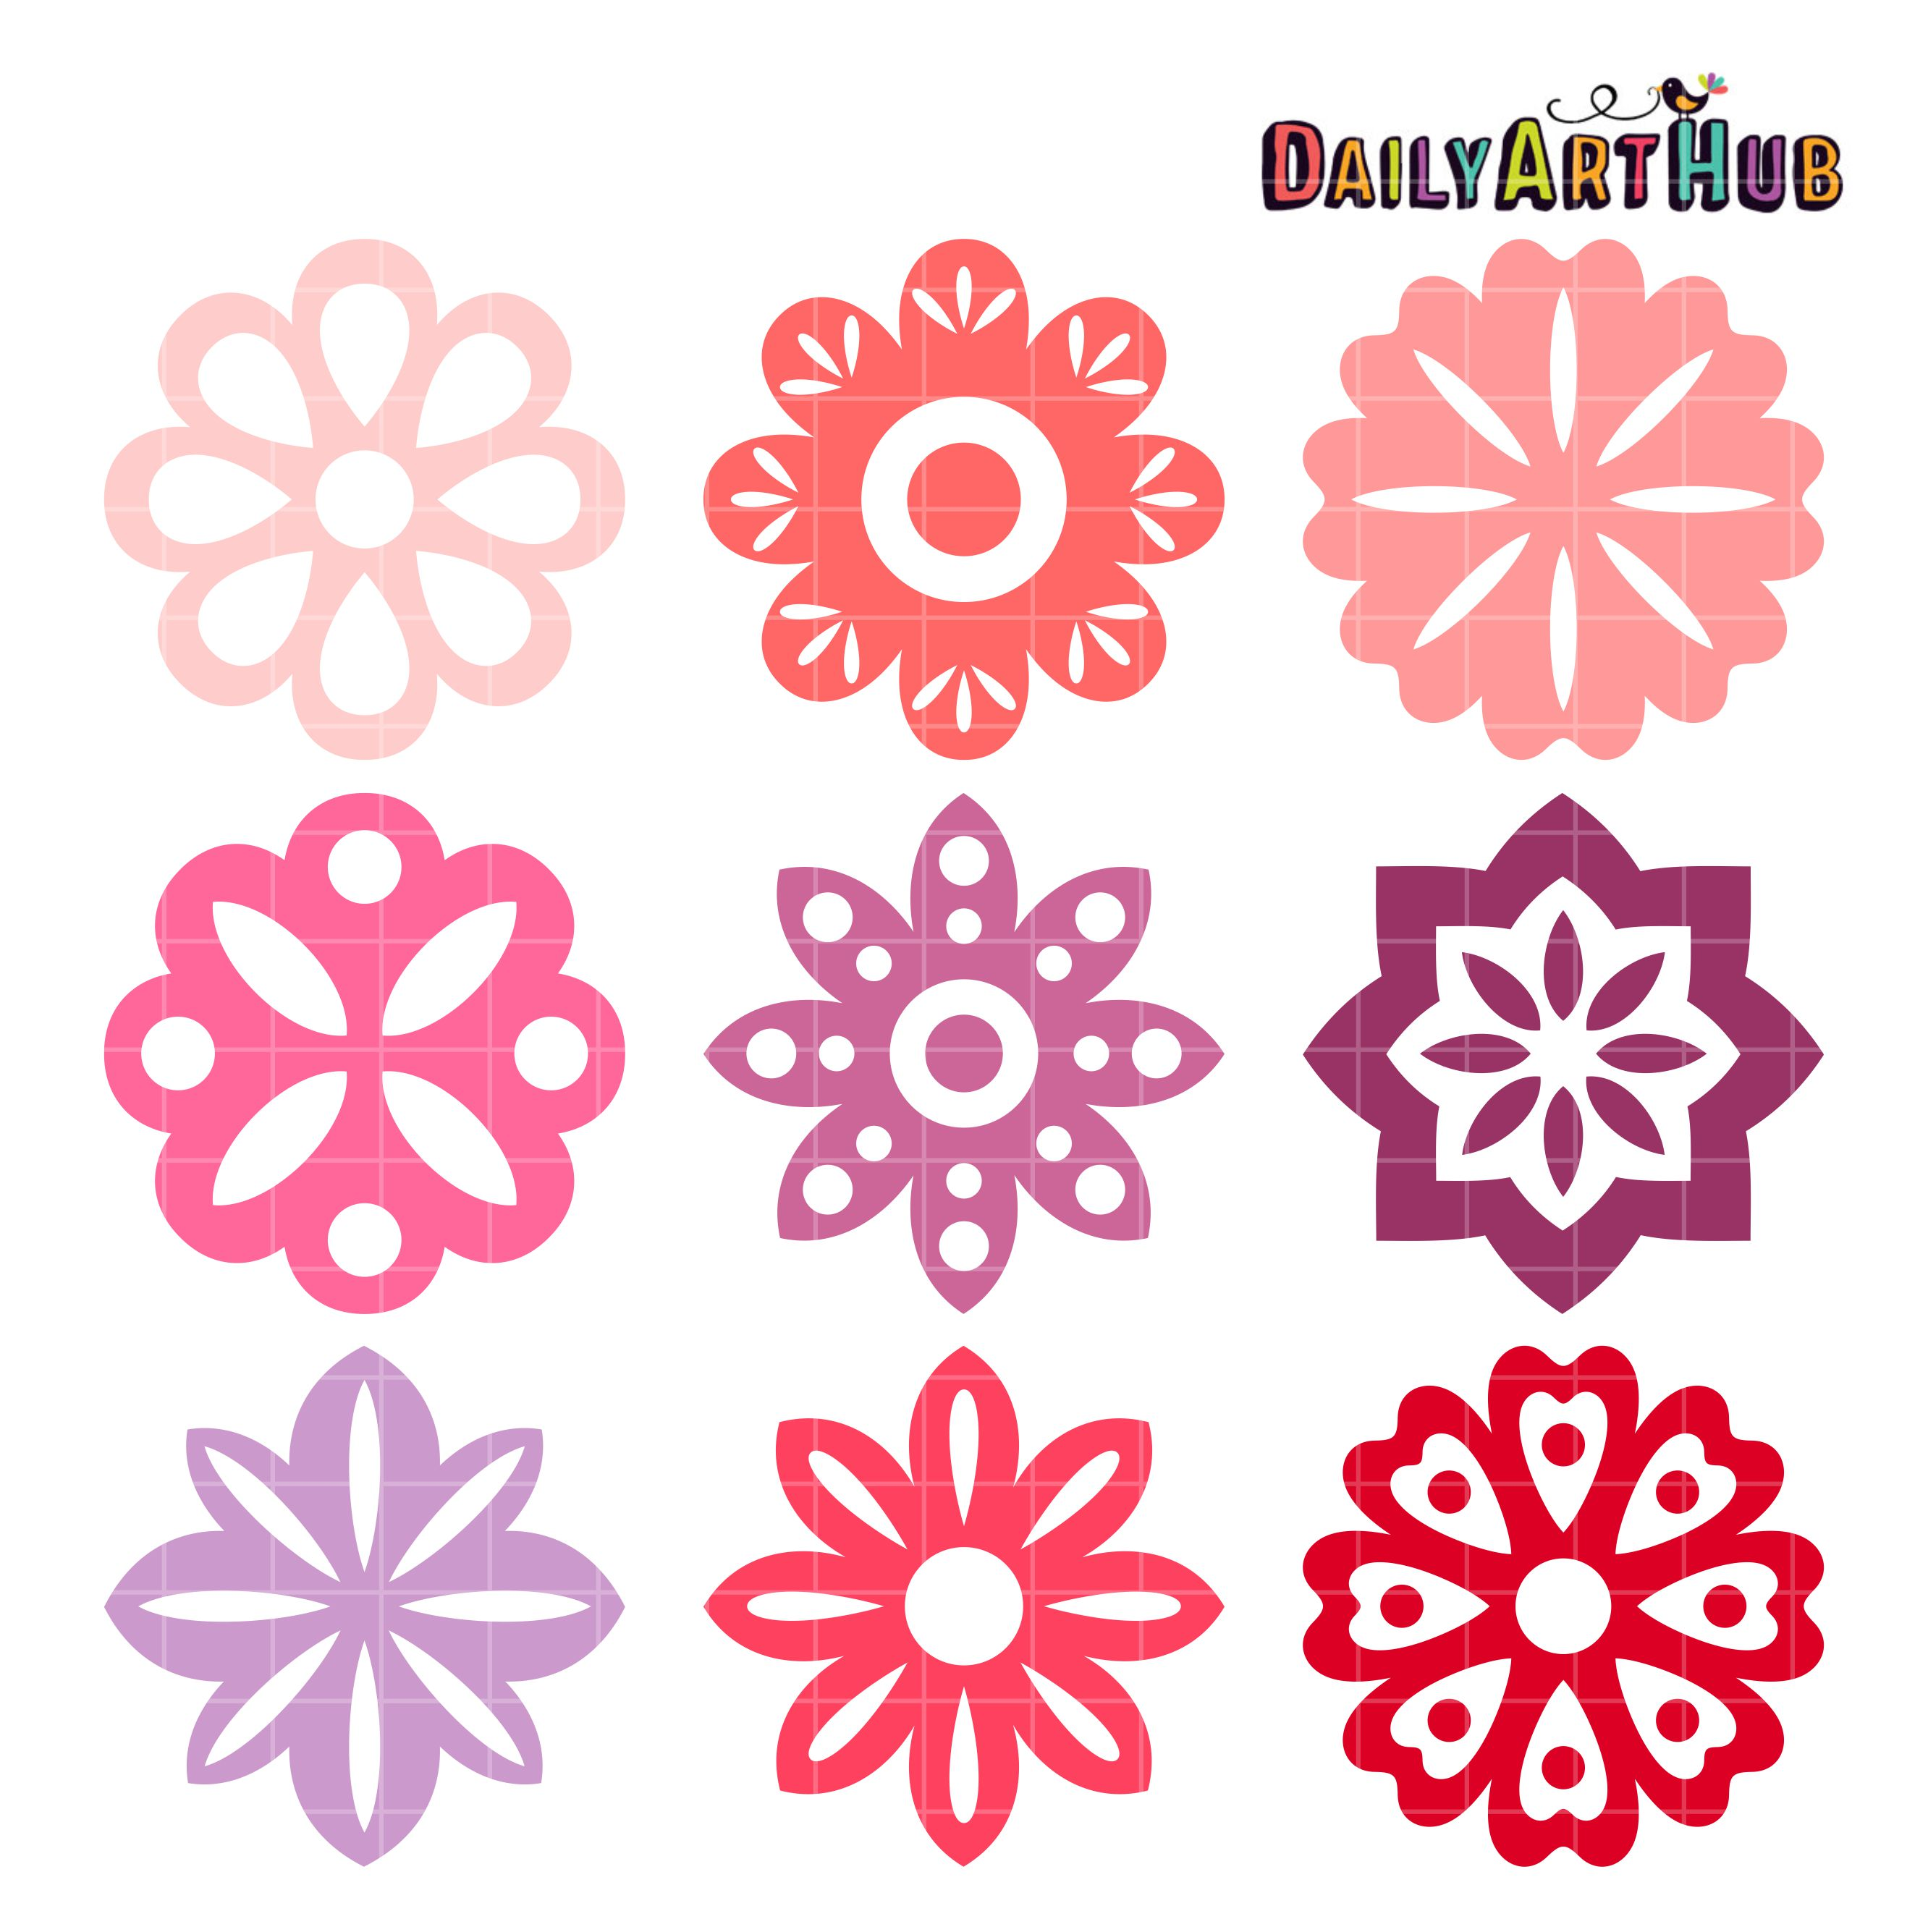 Simple Flower Shapes Clip Art Set – Daily Art Hub – Free ...